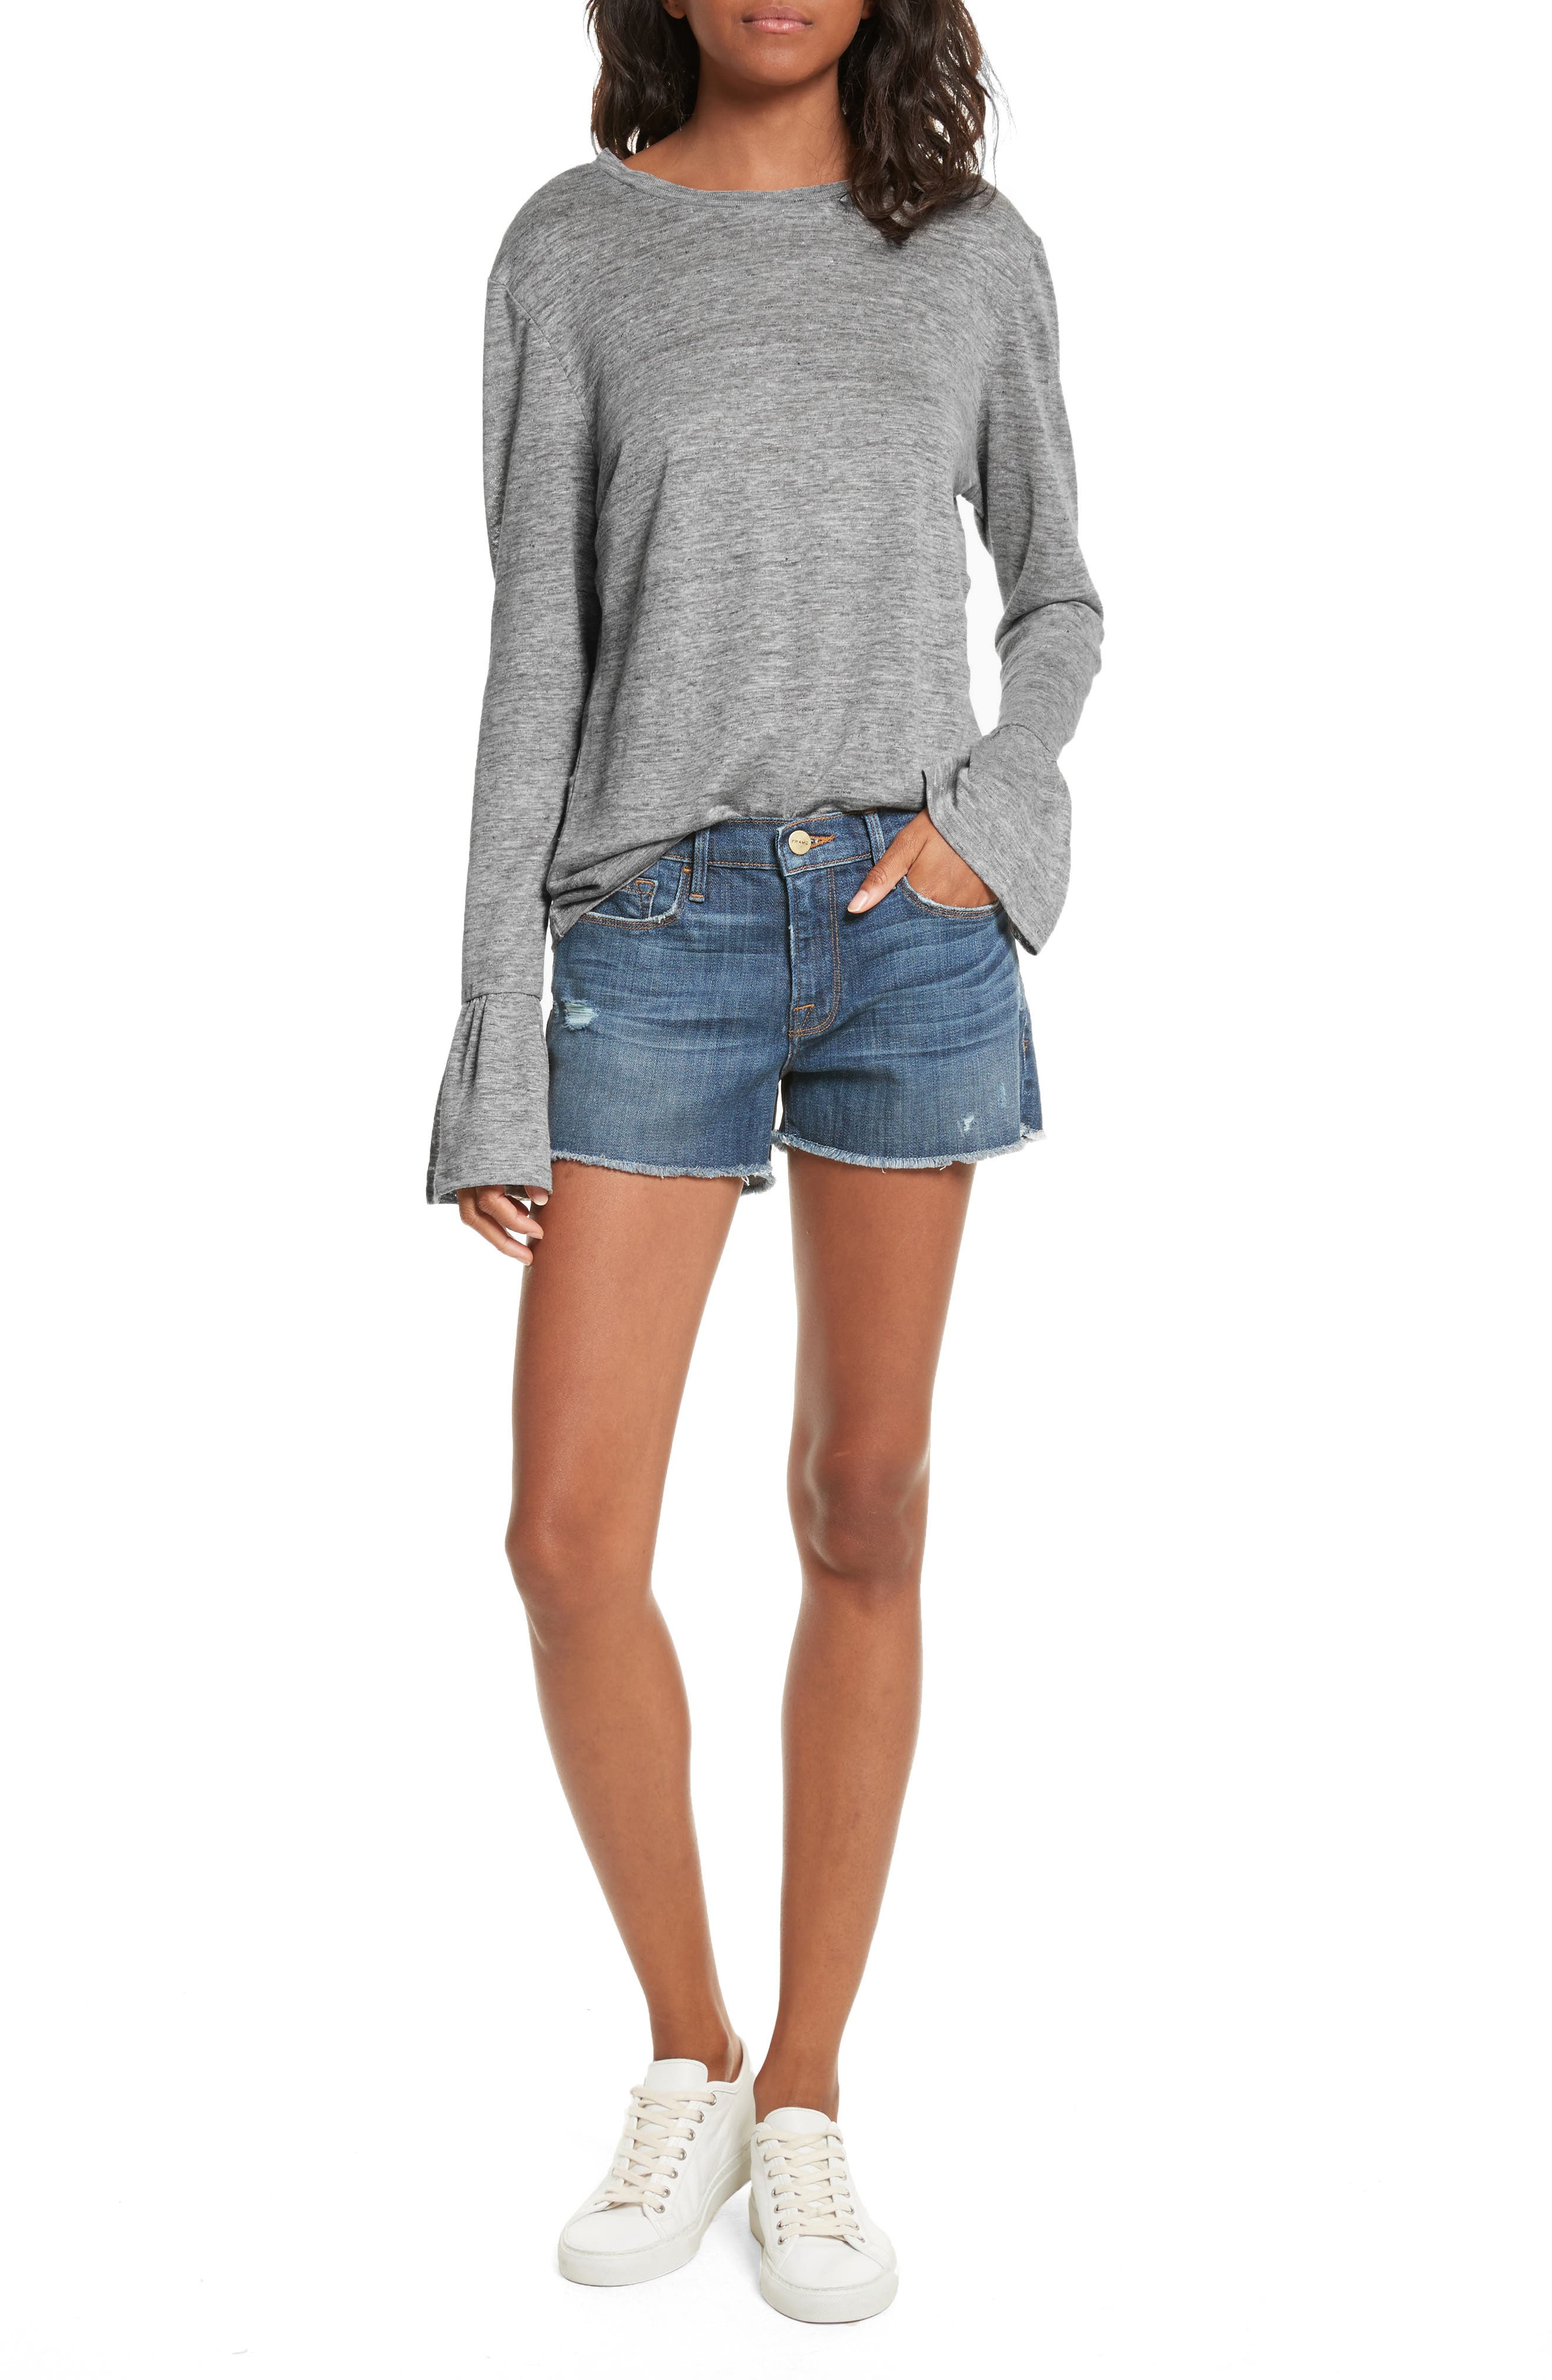 Le Cutoff Denim Shorts,                             Alternate thumbnail 2, color,                             Eckford